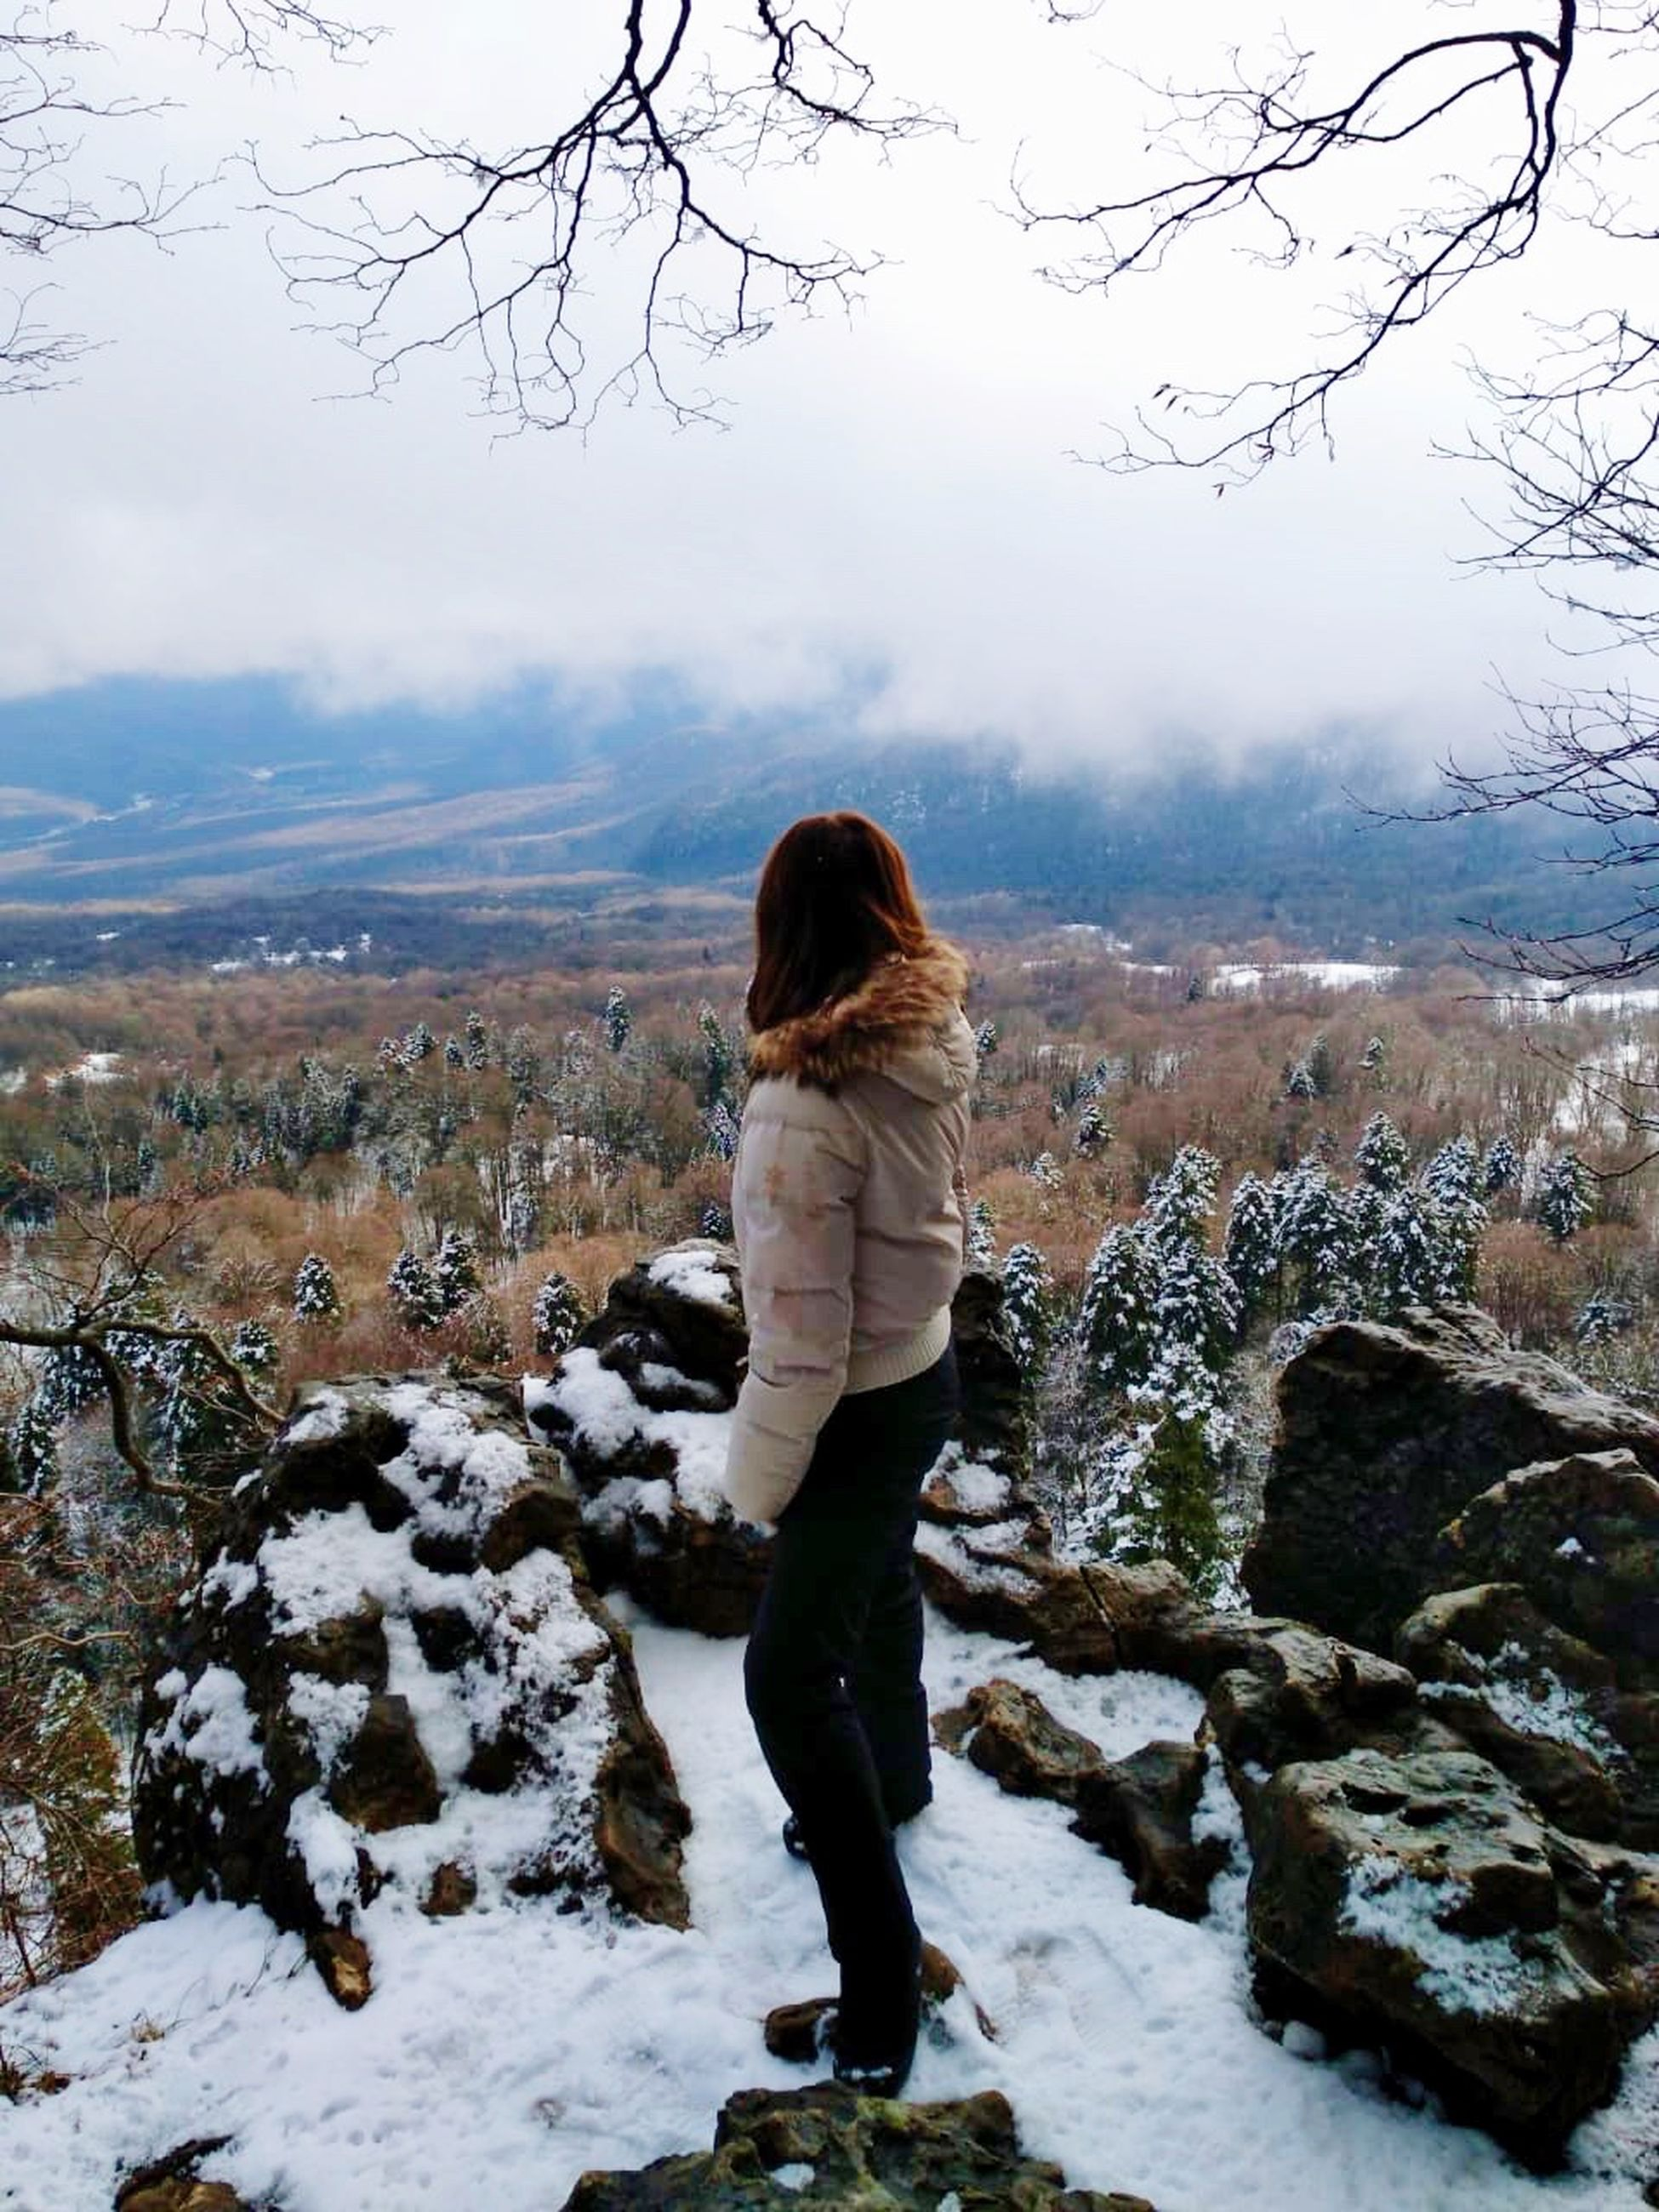 rear view, one person, real people, snow, leisure activity, winter, standing, lifestyles, cold temperature, beauty in nature, women, mountain, tree, nature, full length, day, scenics - nature, plant, warm clothing, hairstyle, outdoors, looking at view